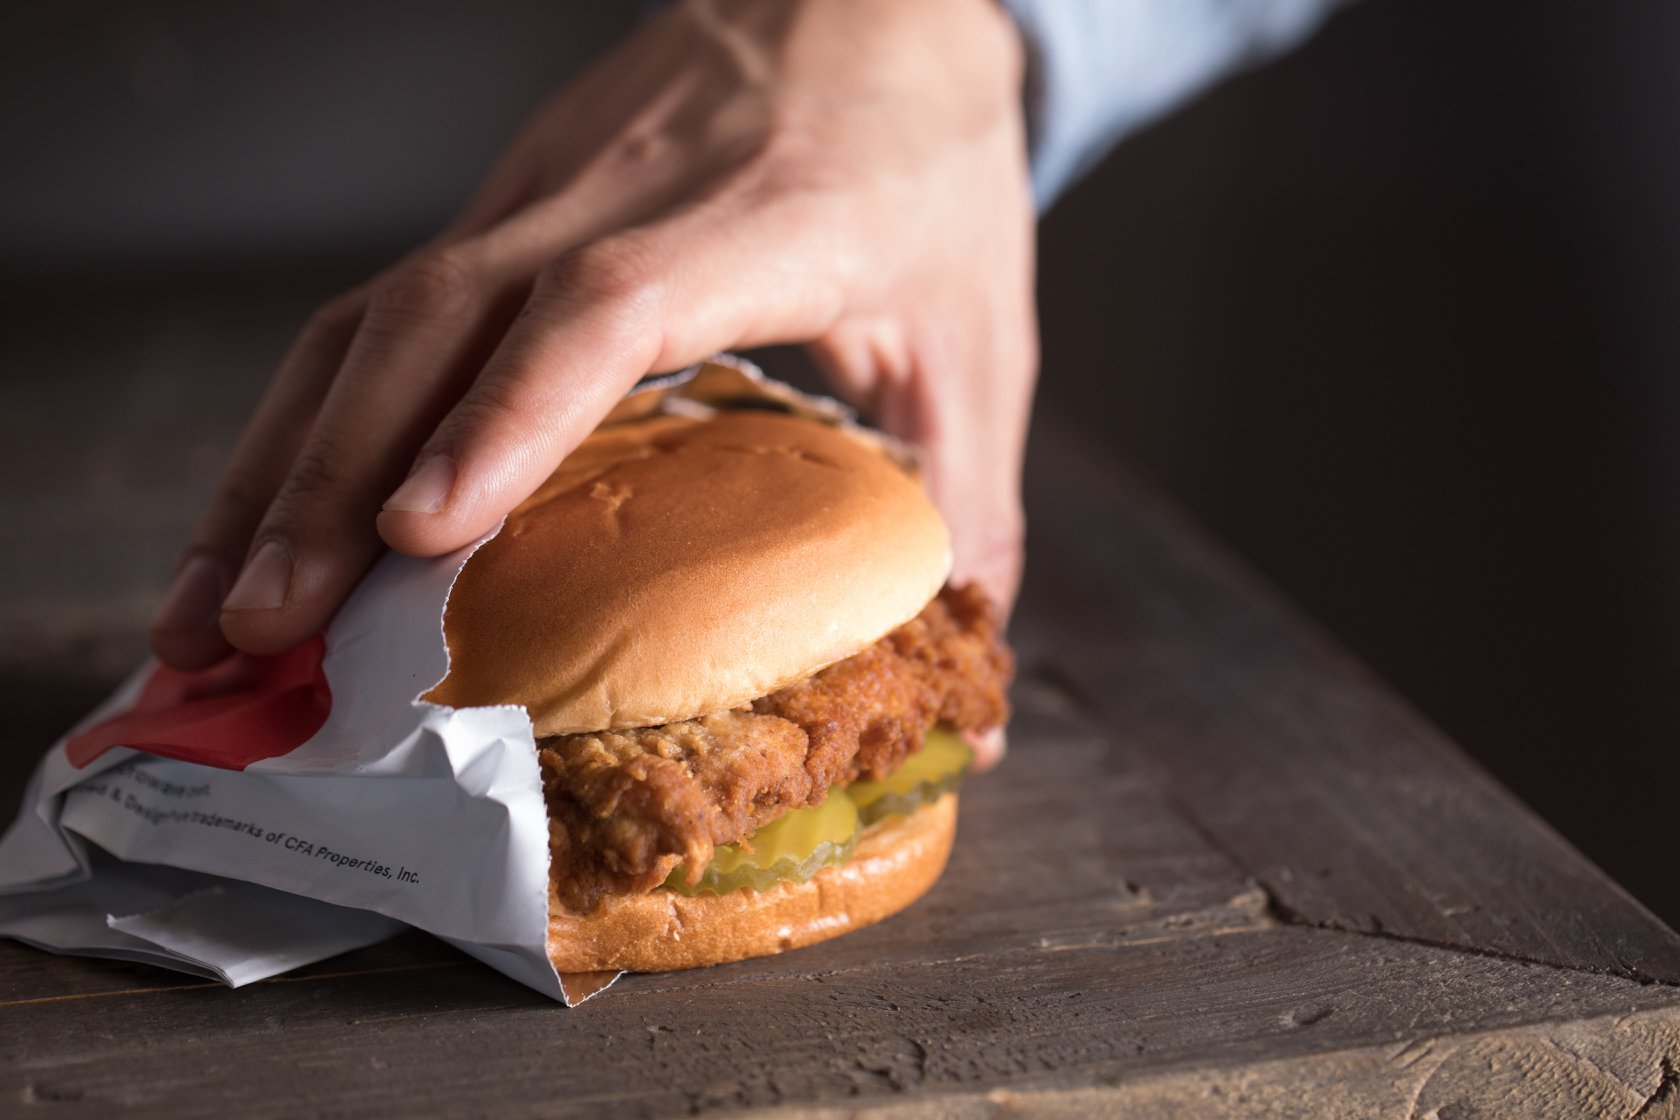 Texas Governor Loses Appetite for Chick-fil-A Following Its Decision to Stop Anti-LGBTQ Donations